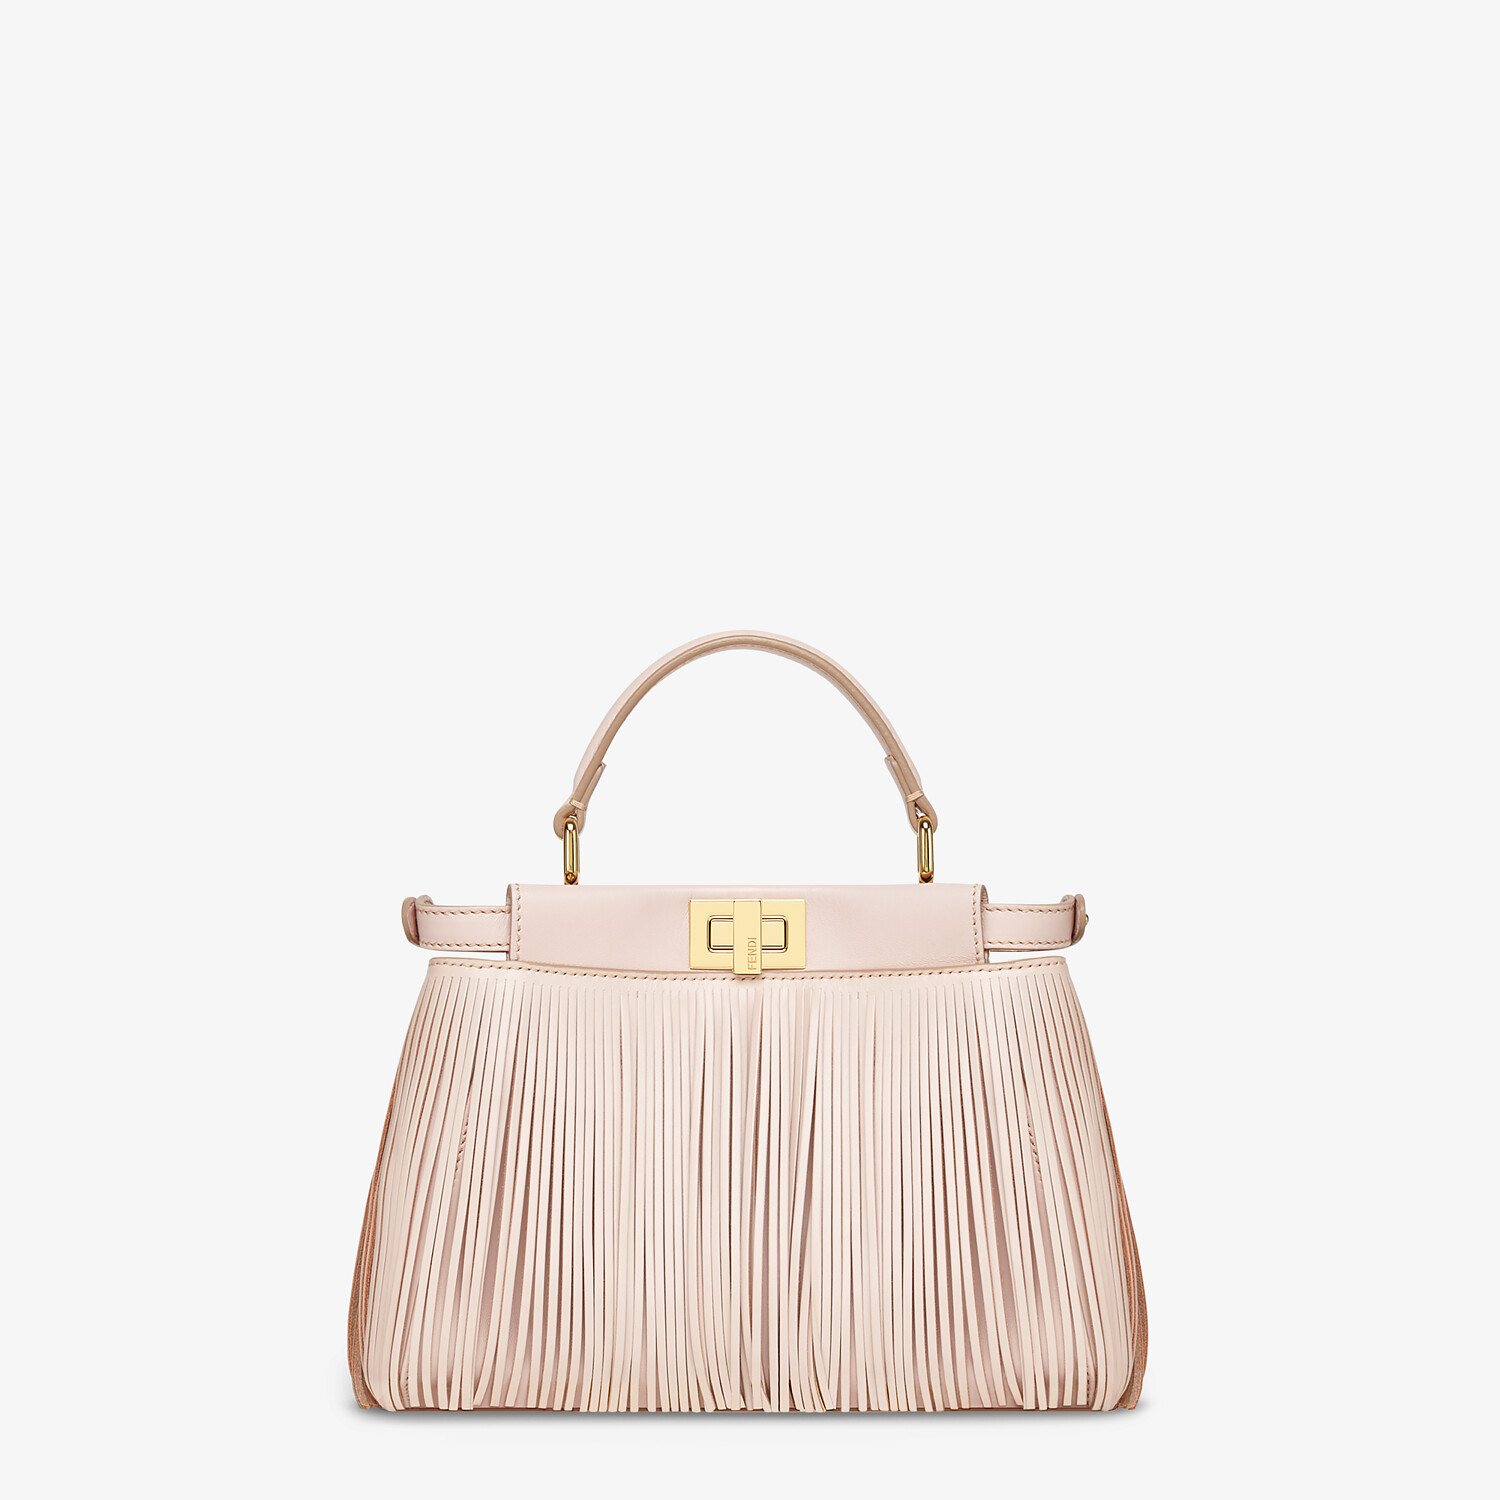 FENDI PEEKABOO ICONIC MINI - Pink leather bag with fringes - view 3 detail